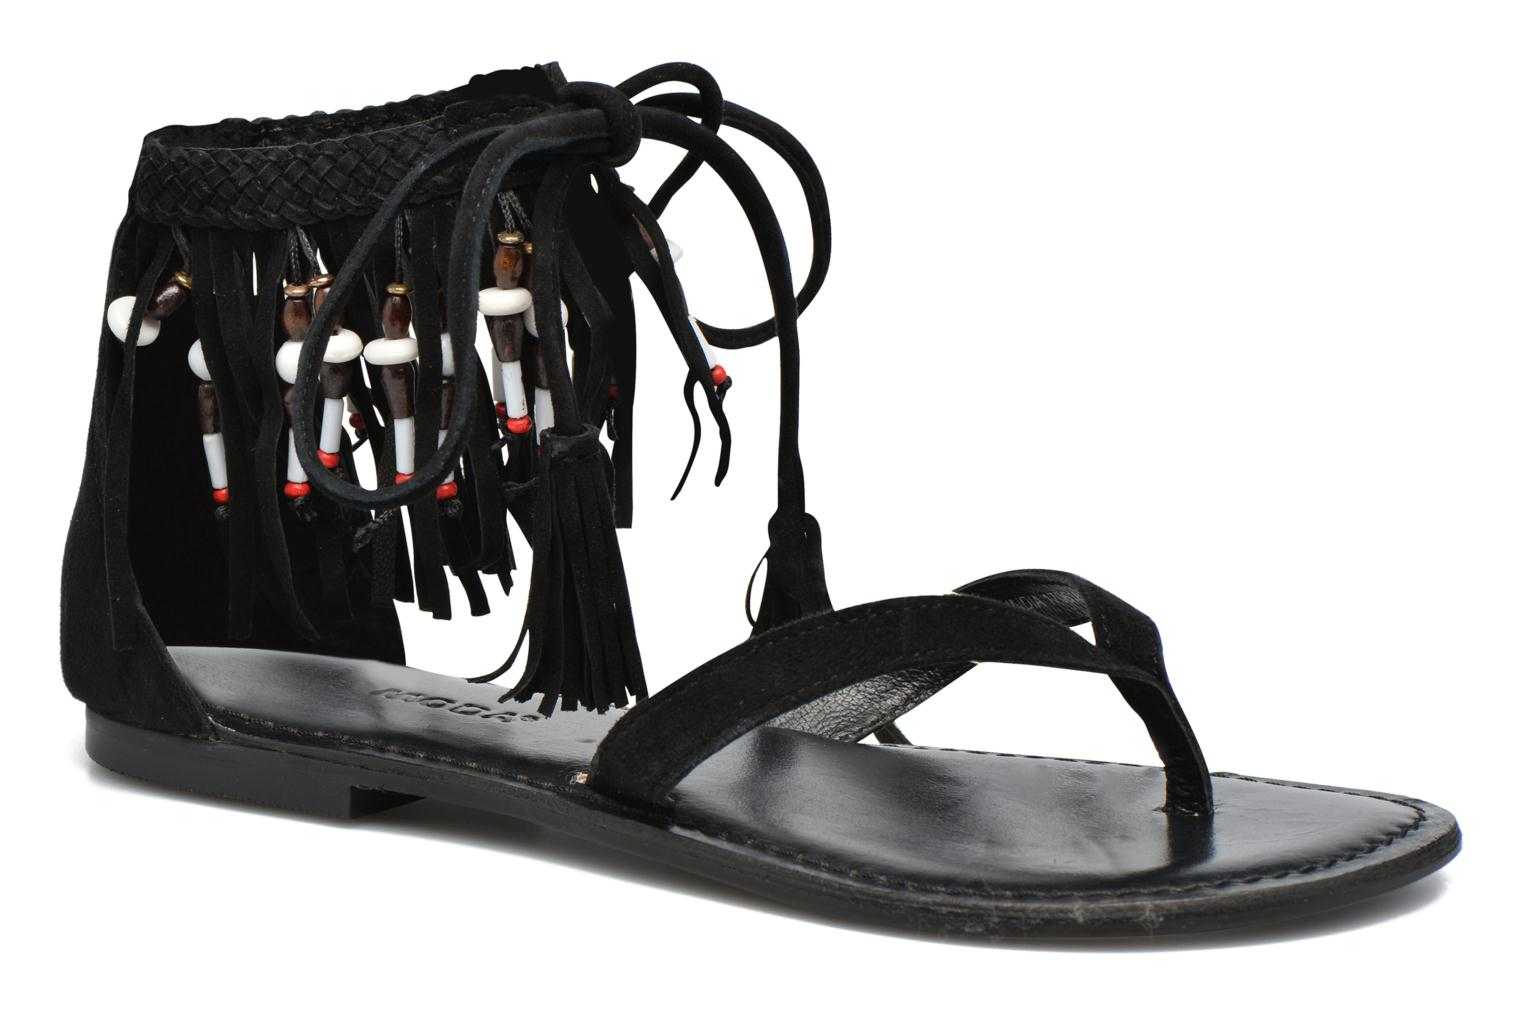 Kaya Leather Sandal by Vero ModaRebajas - 30%